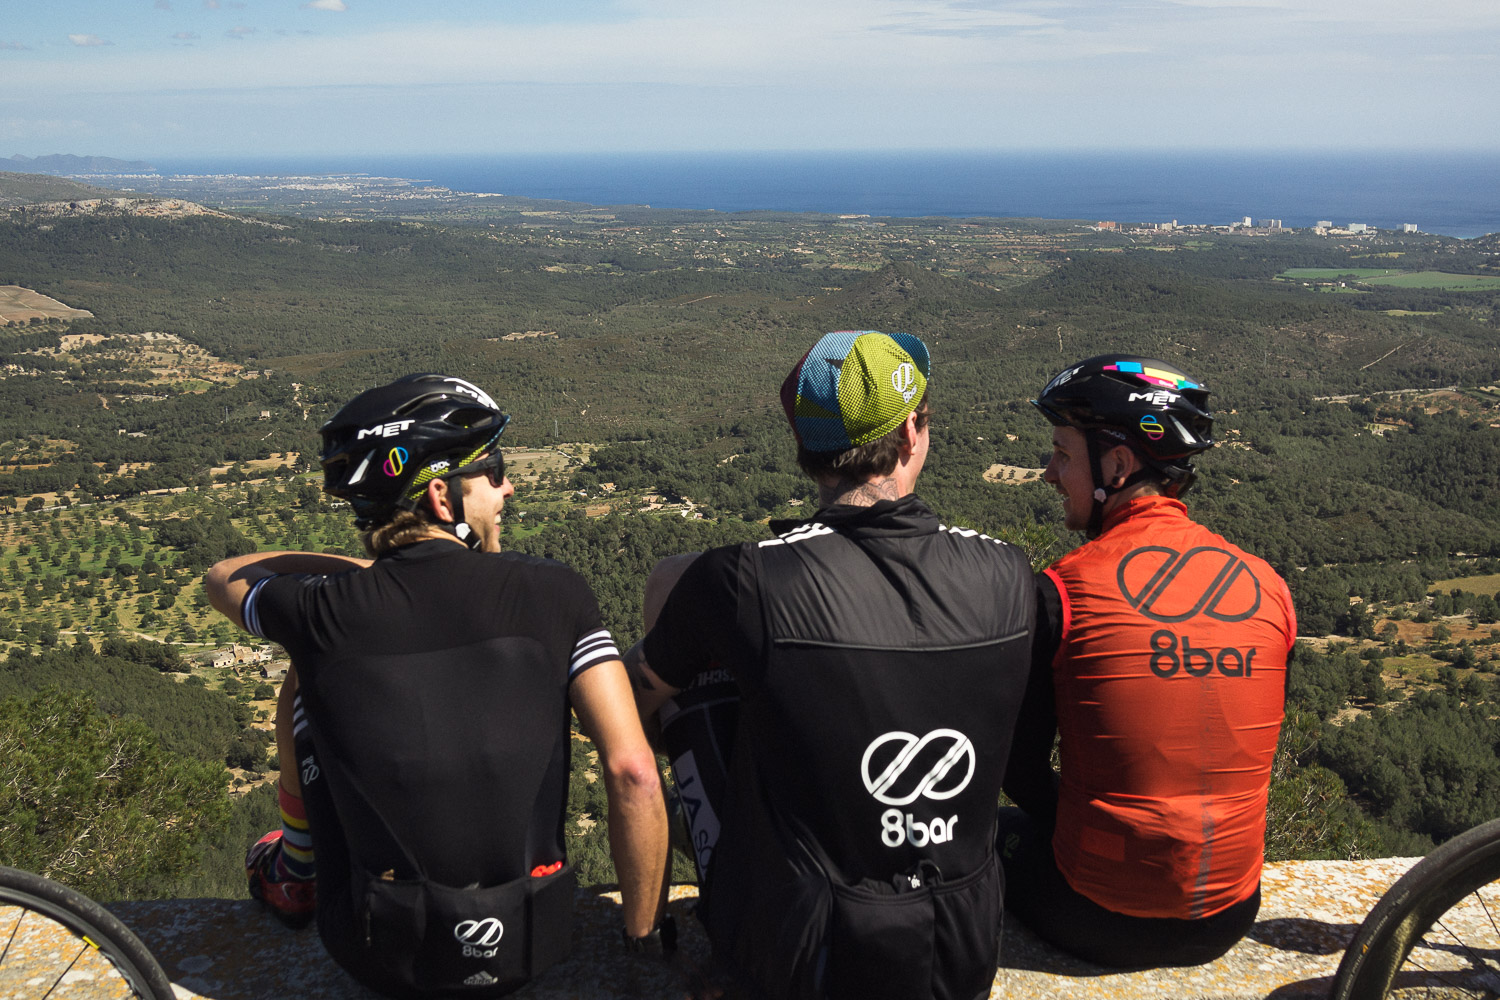 8bar_mallorca_trainingscamp_blog_lr-4